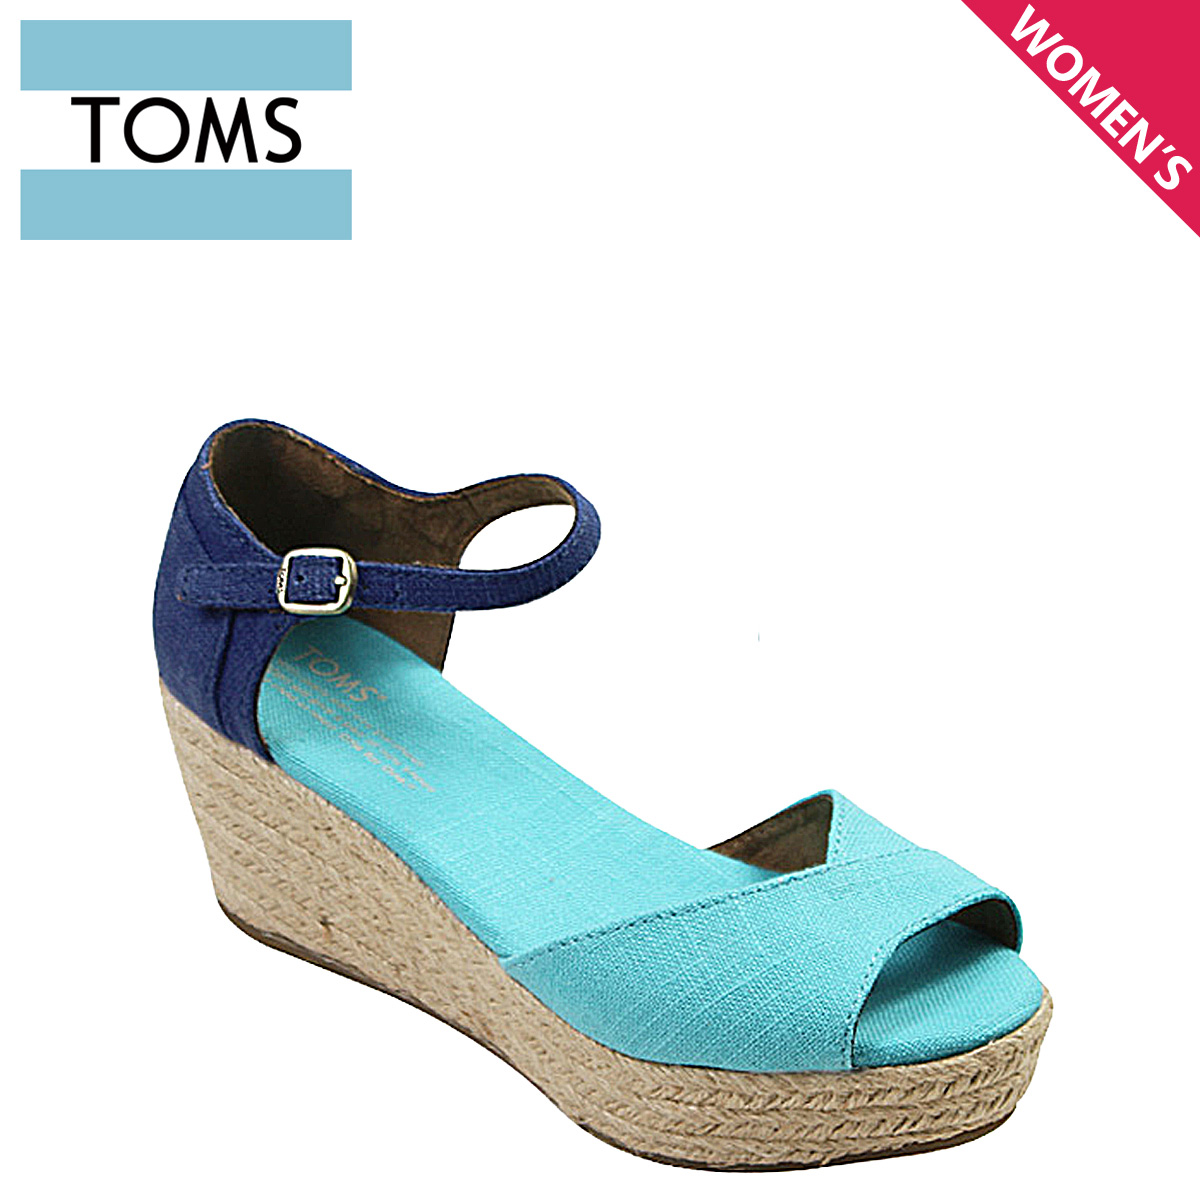 f951bd5341 Sugar Online Shop: TOMS SHOES Toms shoes women's VEGAN WOMEN's ...